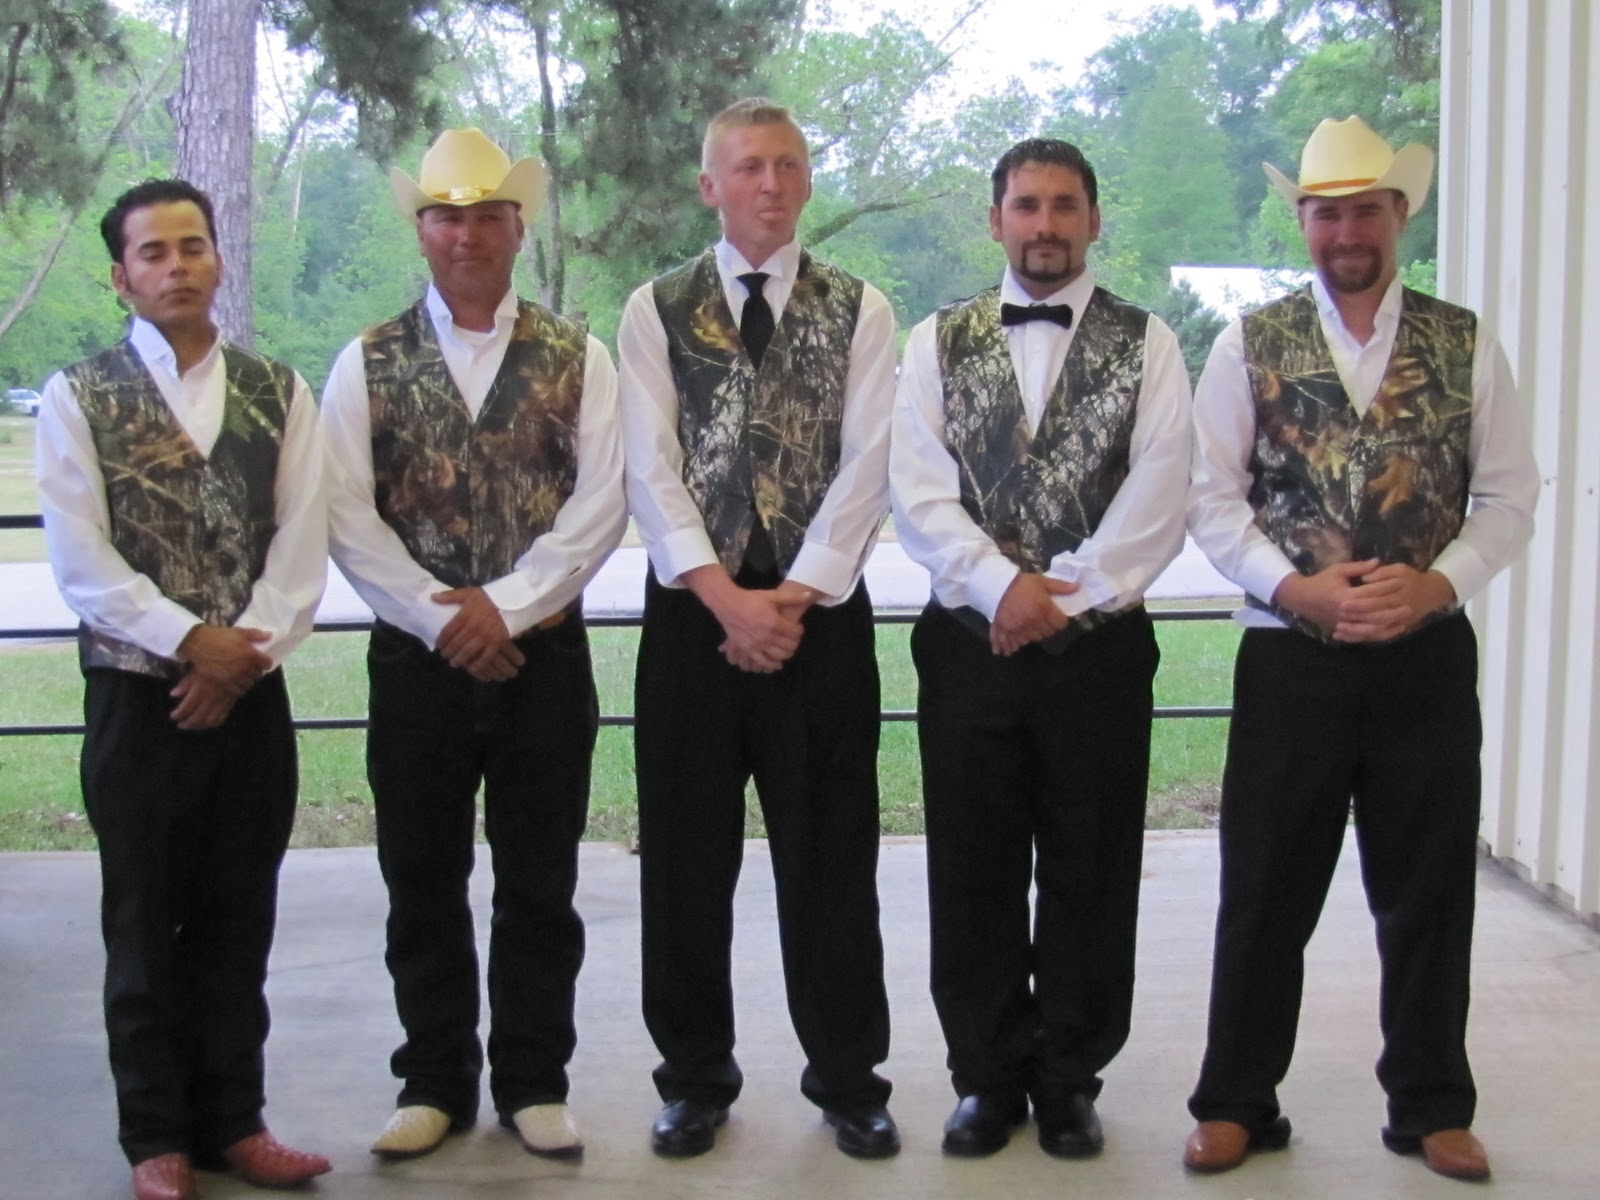 Now Lets Have A Look Athe Groom And His Groomsmen Sporting Their Mossy Oak Vest Cowboy Hats Boots The Ties Are Mostly Removed By Time This Pic